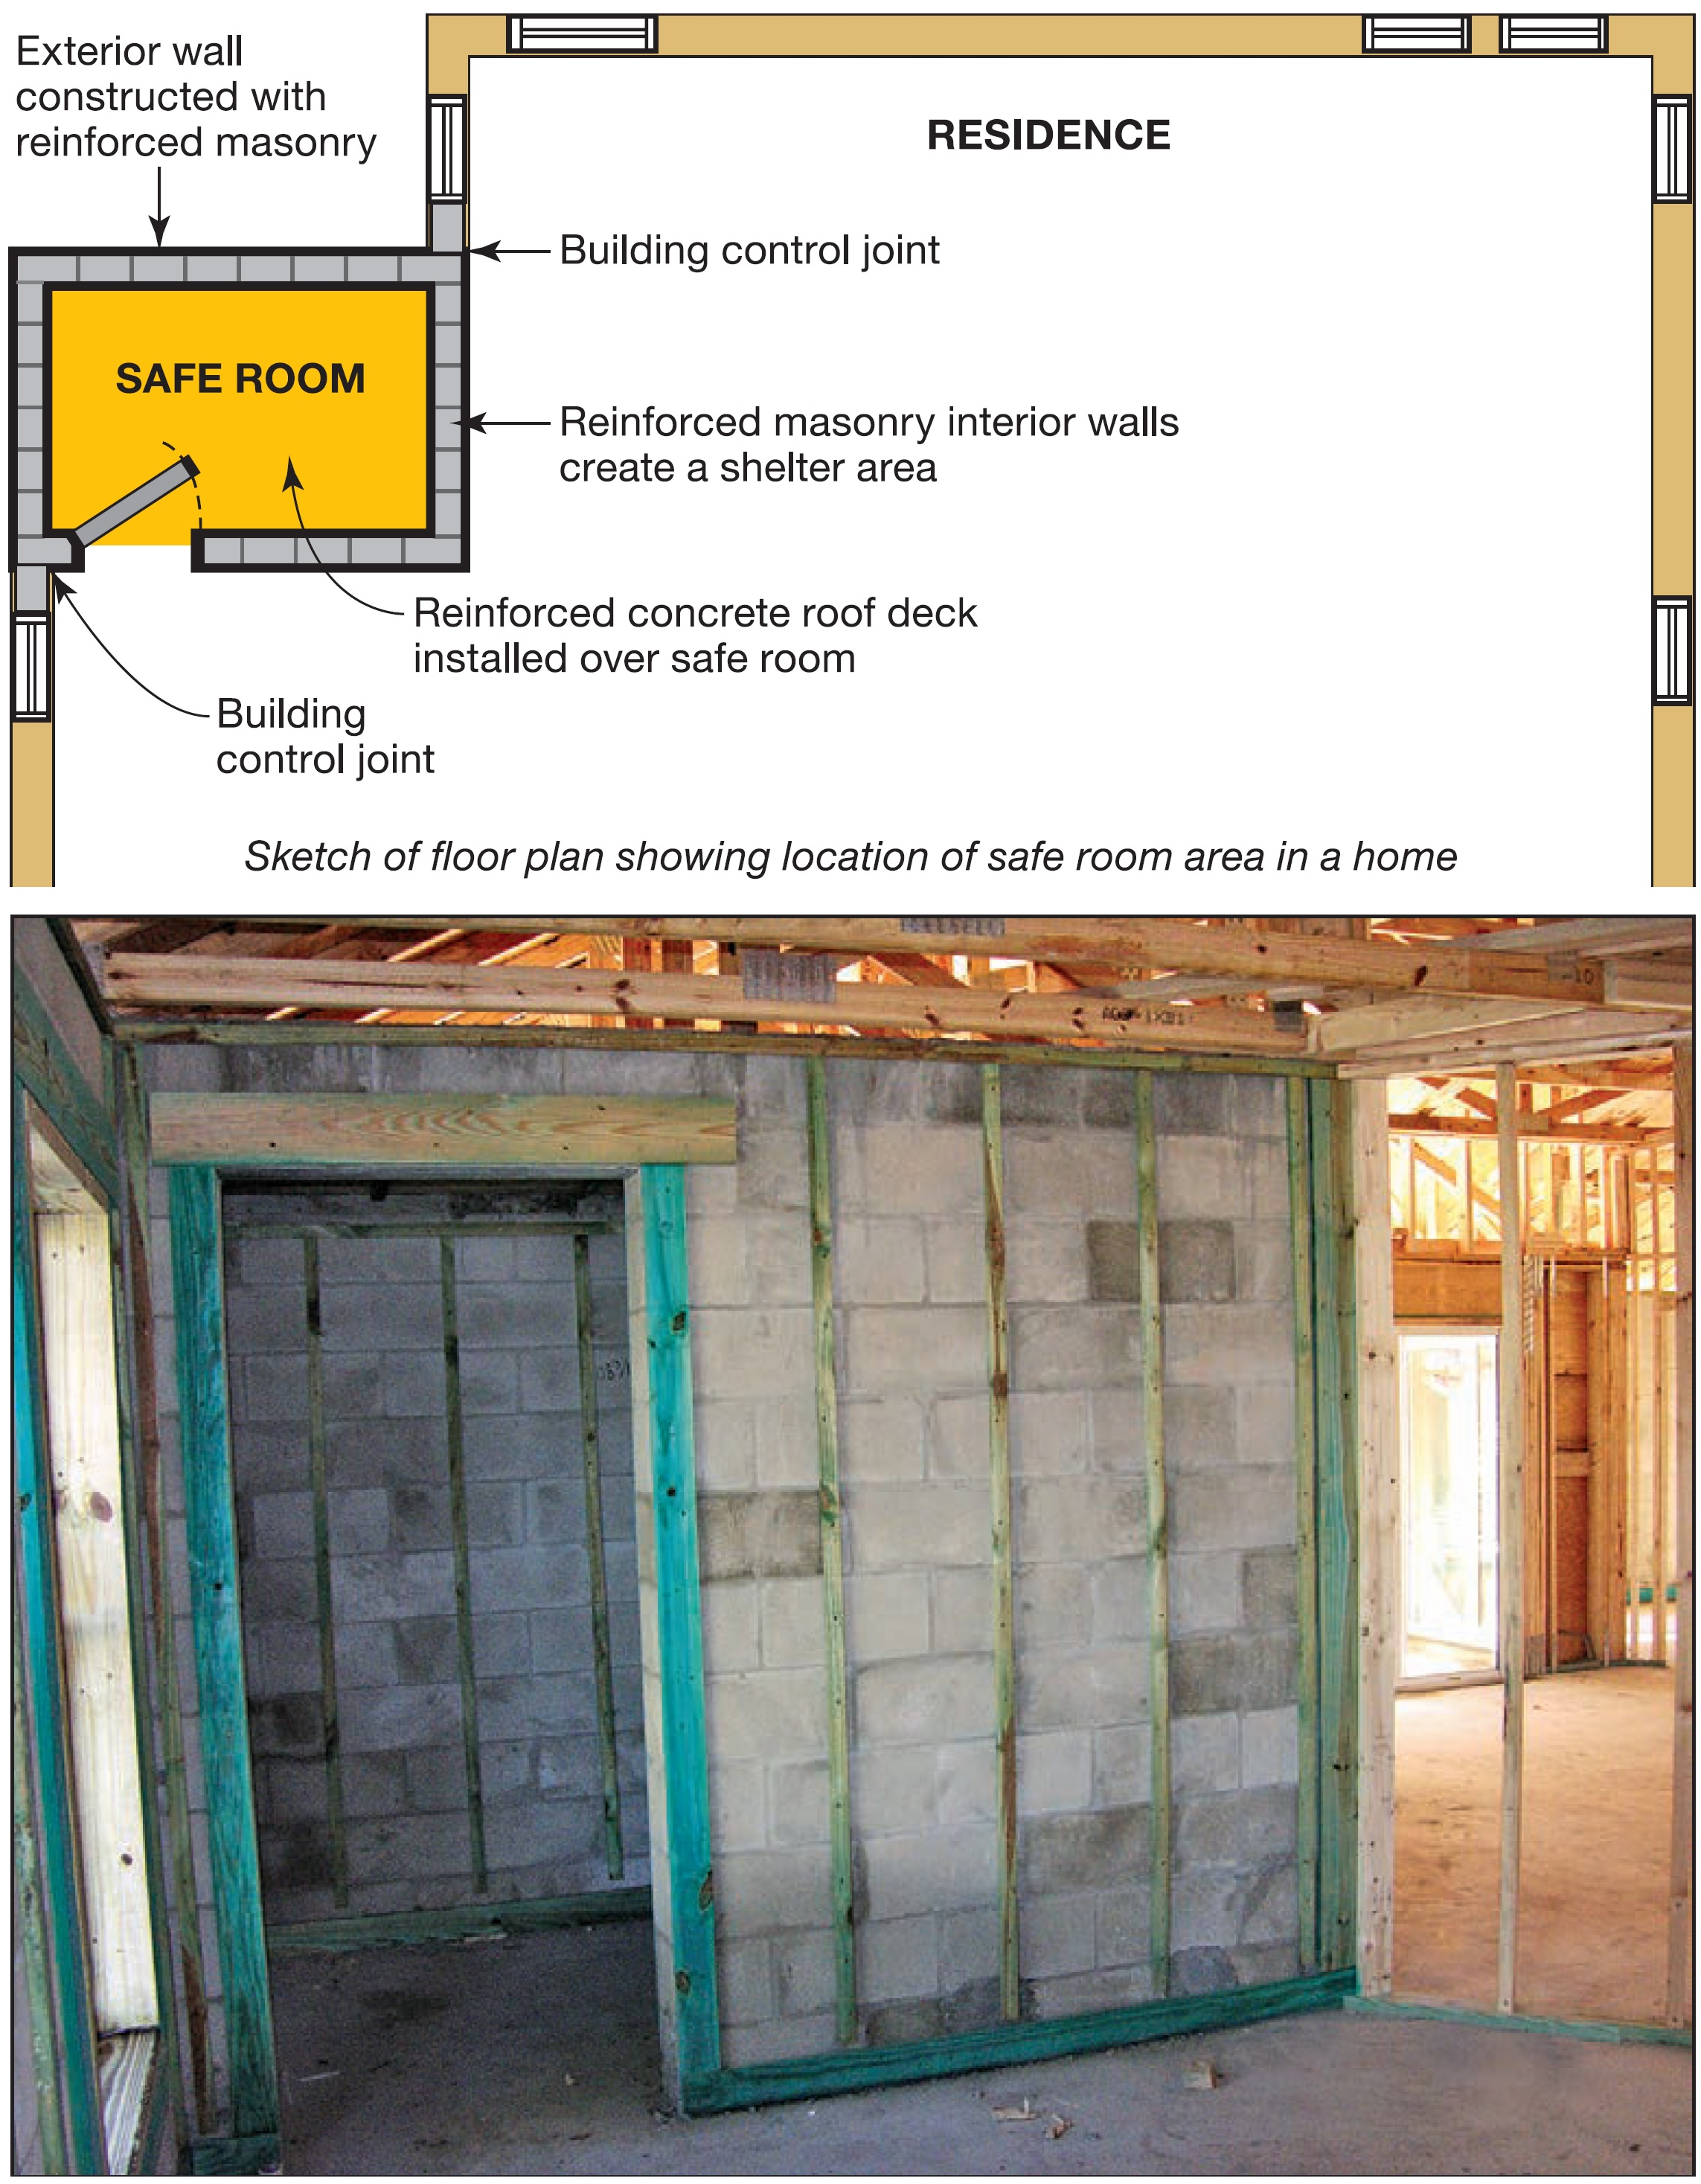 Residential safe room with grouted CMU and continuous vertical reinforcement.